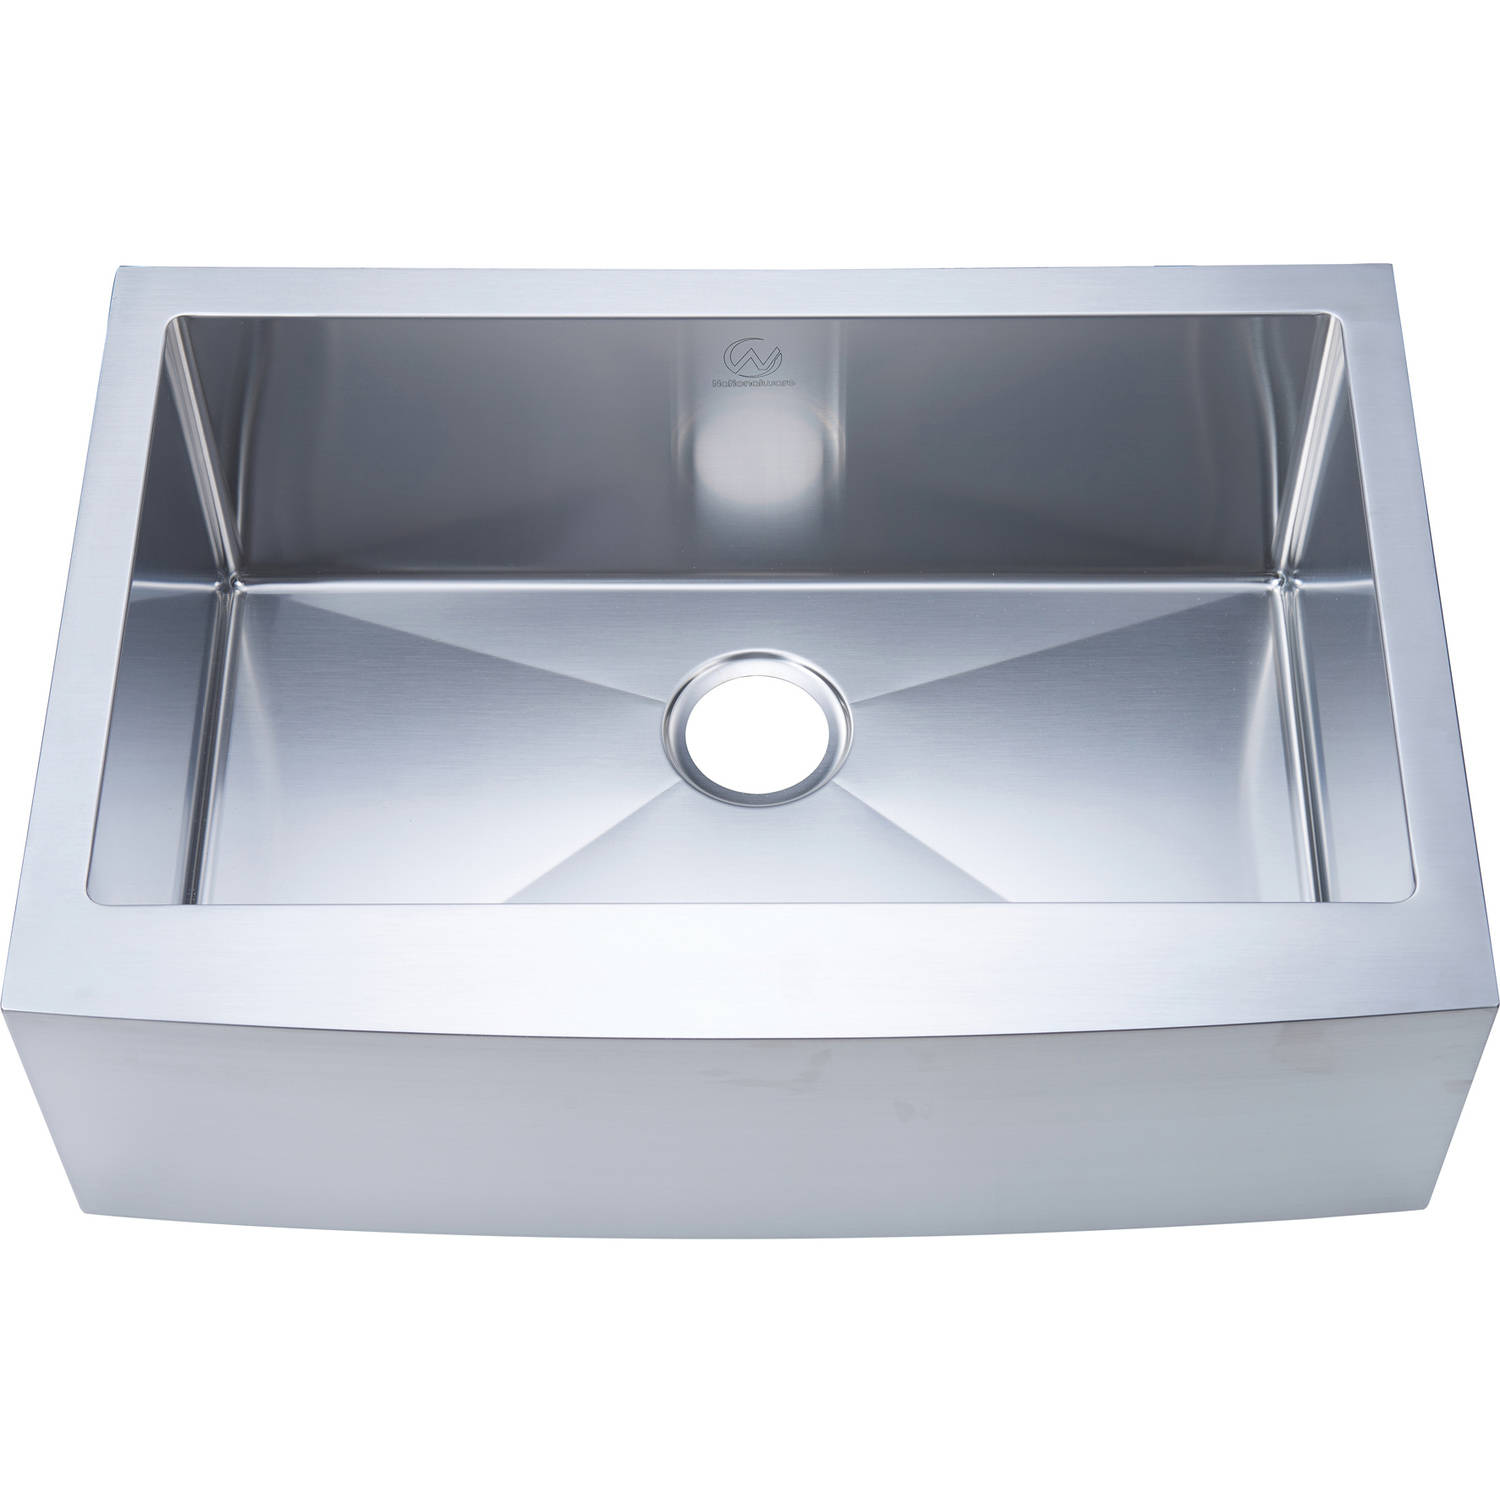 Jan S Kitchen Sink: Nationalware 16-gauge Stainless Steel 30-inch Single Basin